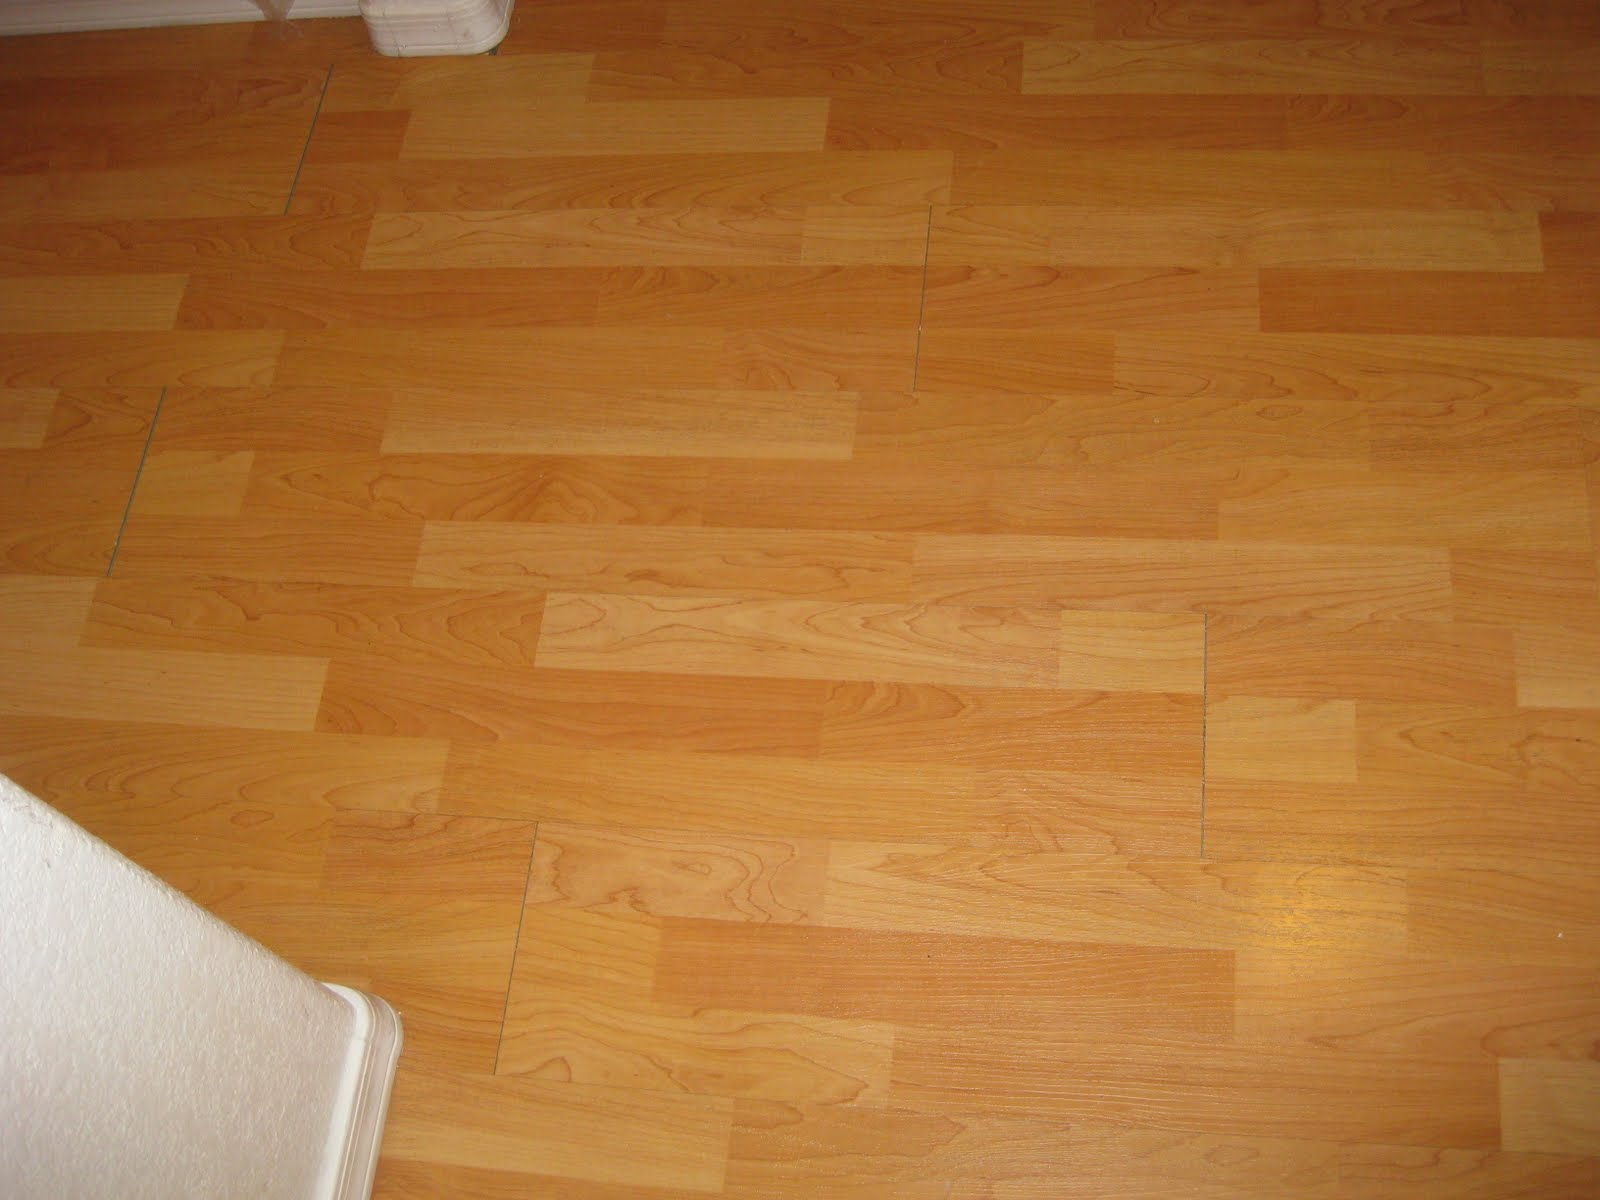 Deidre and joseph how to fix gaps in your wood floor for How to fix gaps in hardwood floors